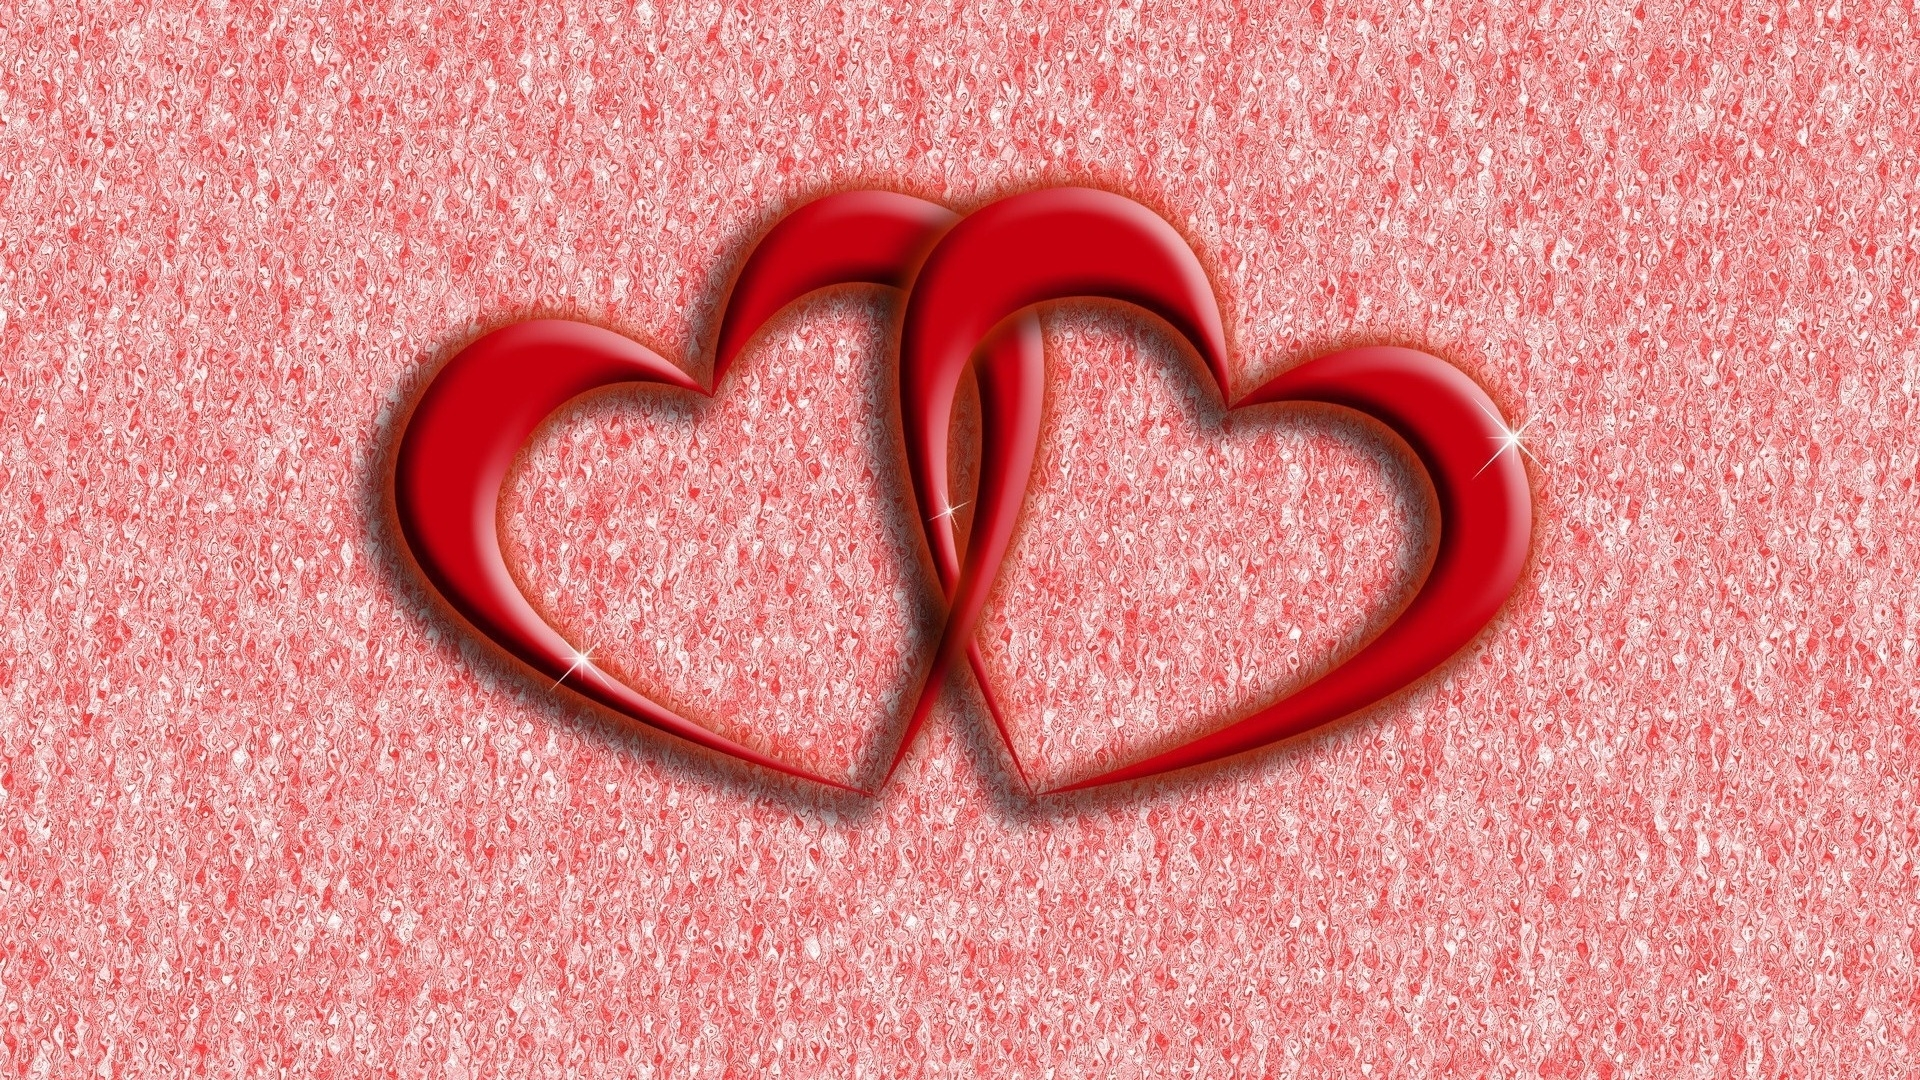 Download Wallpaper 1920x1080 Heart Pair Red Love Full HD 1080p